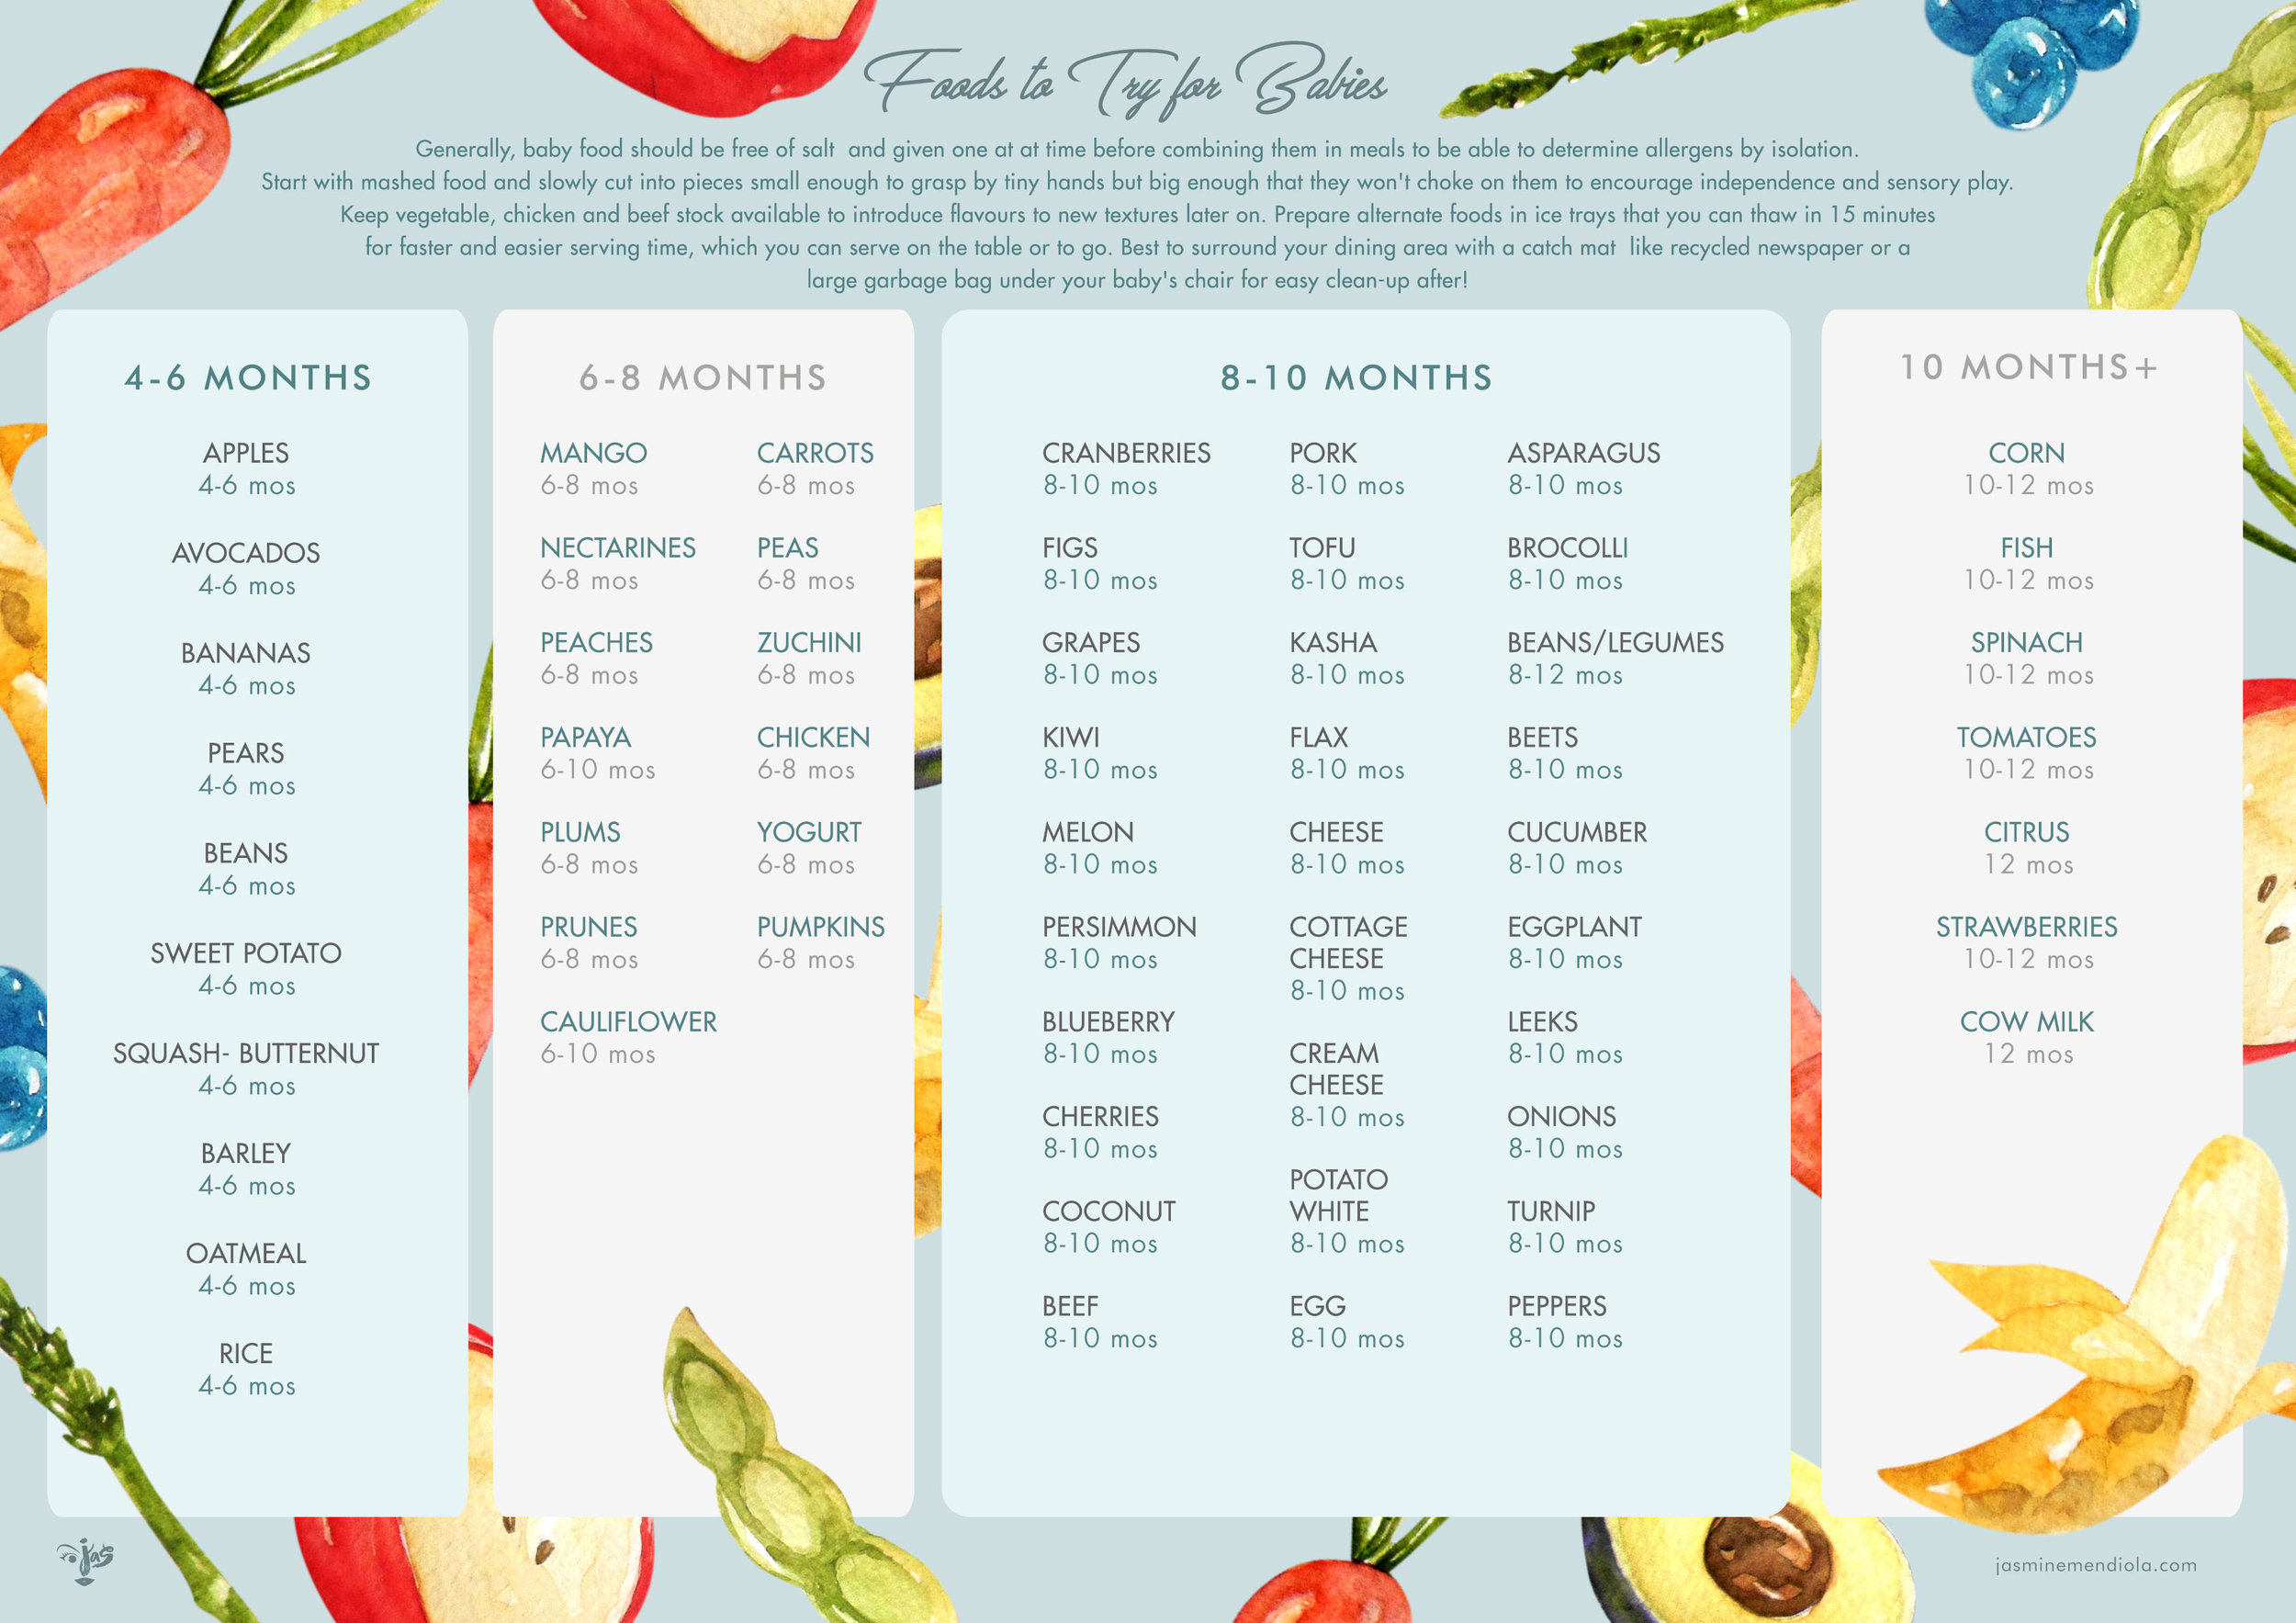 Baby Food Checklist  (I used this list to make sure I have a good variety of meals for both Roux and Paco and that I've made them try as much types of food within what's adiseable for their age as they slowly got introduced to solid food. They're happy eaters so far!)